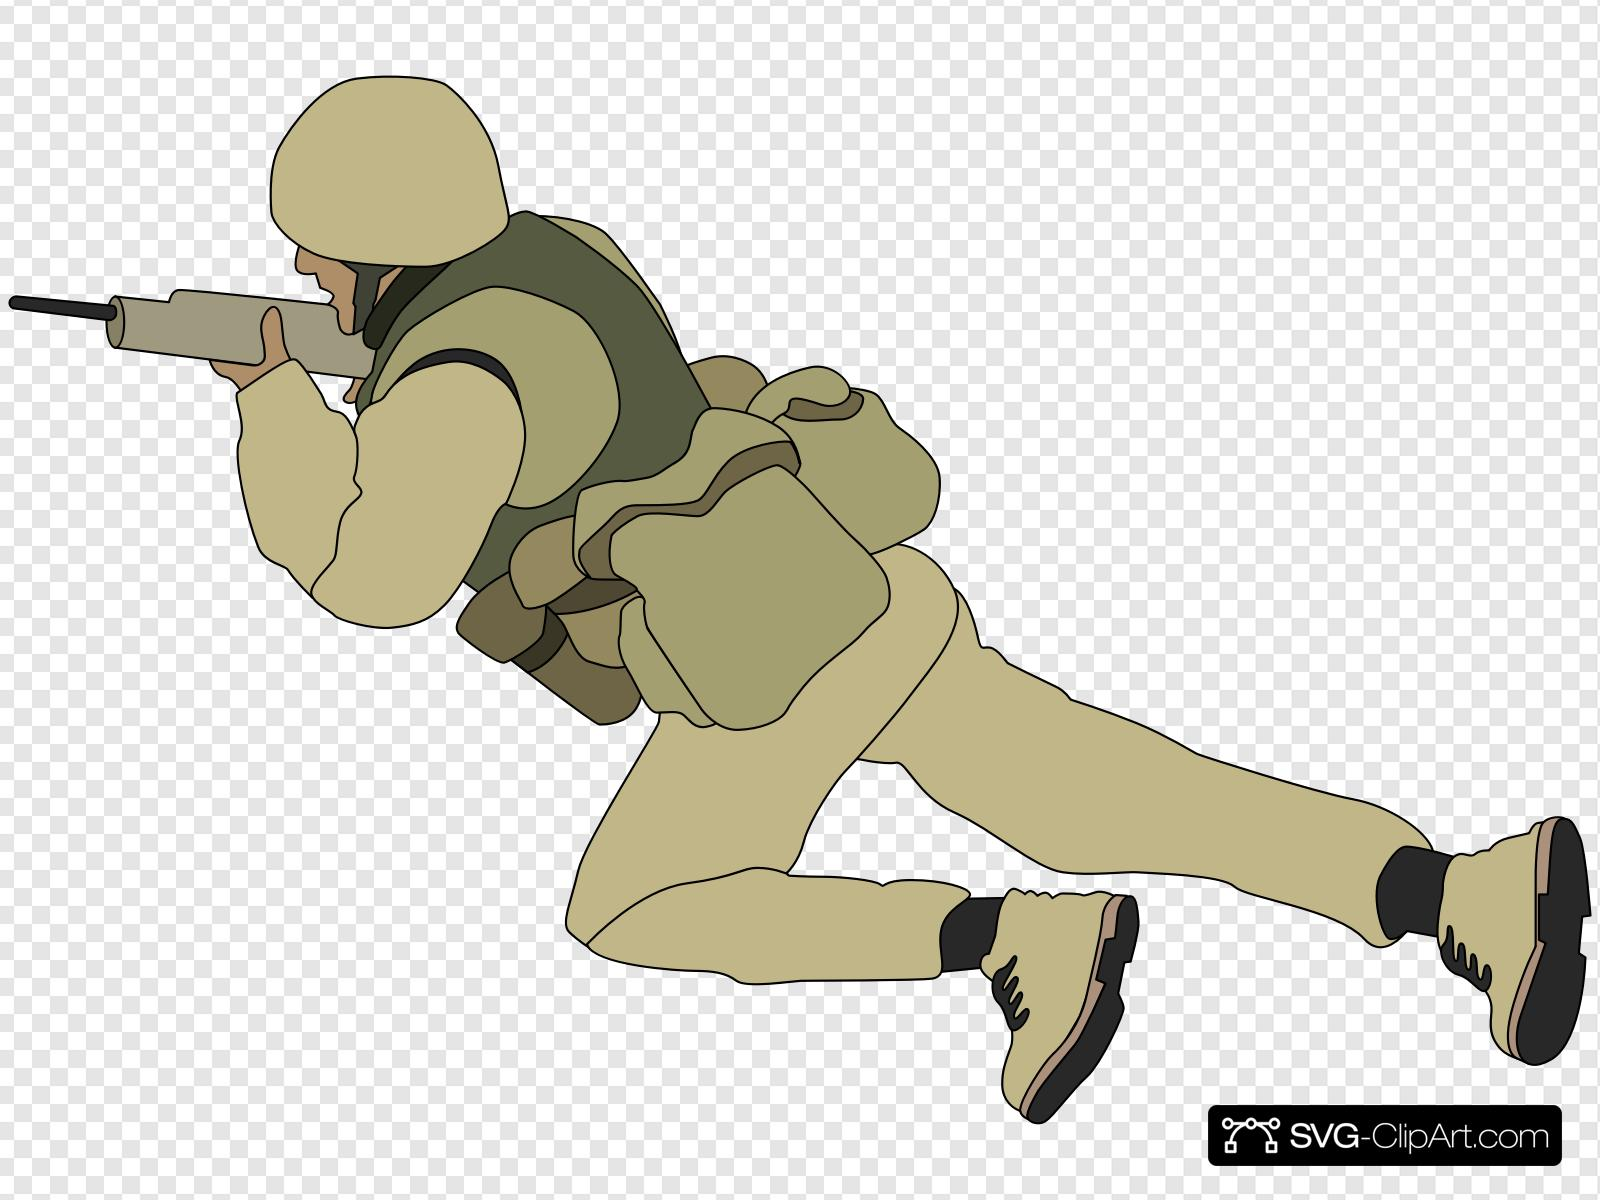 Crawling Soldier Clip art, Icon and SVG.